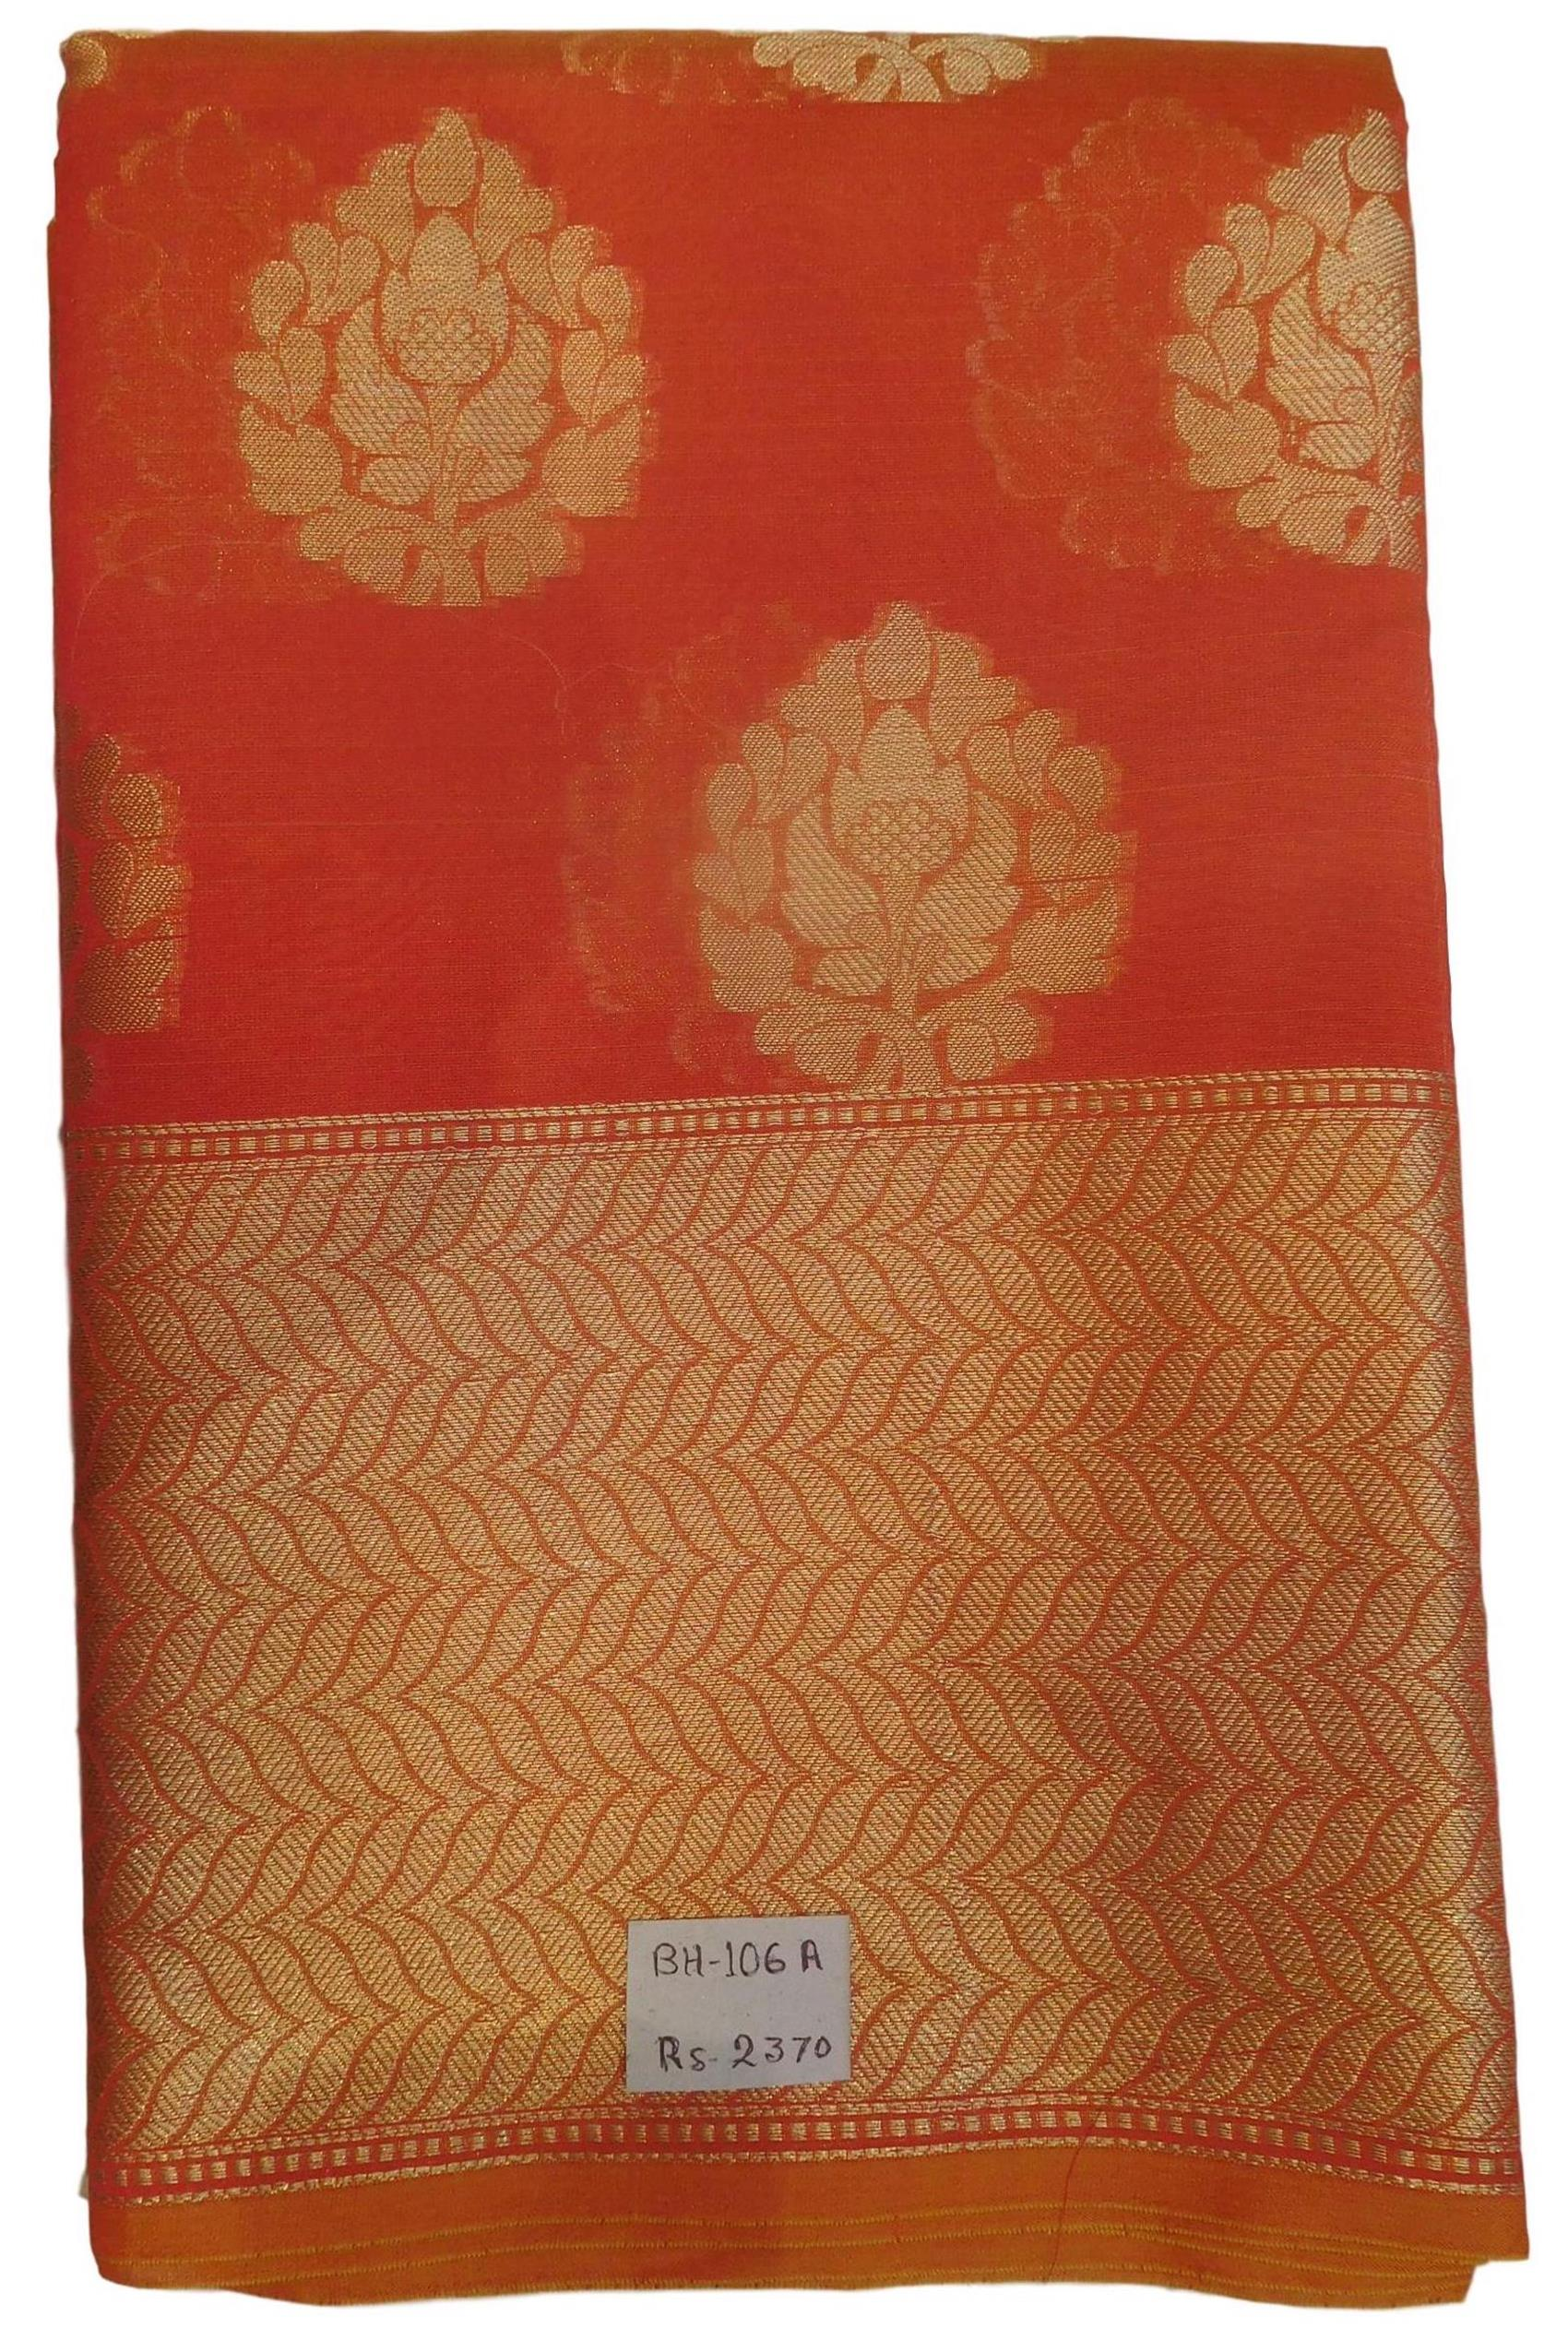 Red Traditional Designer Wedding Hand Weaven Pure Benarasi Zari Work Saree Sari With Blouse BH106A